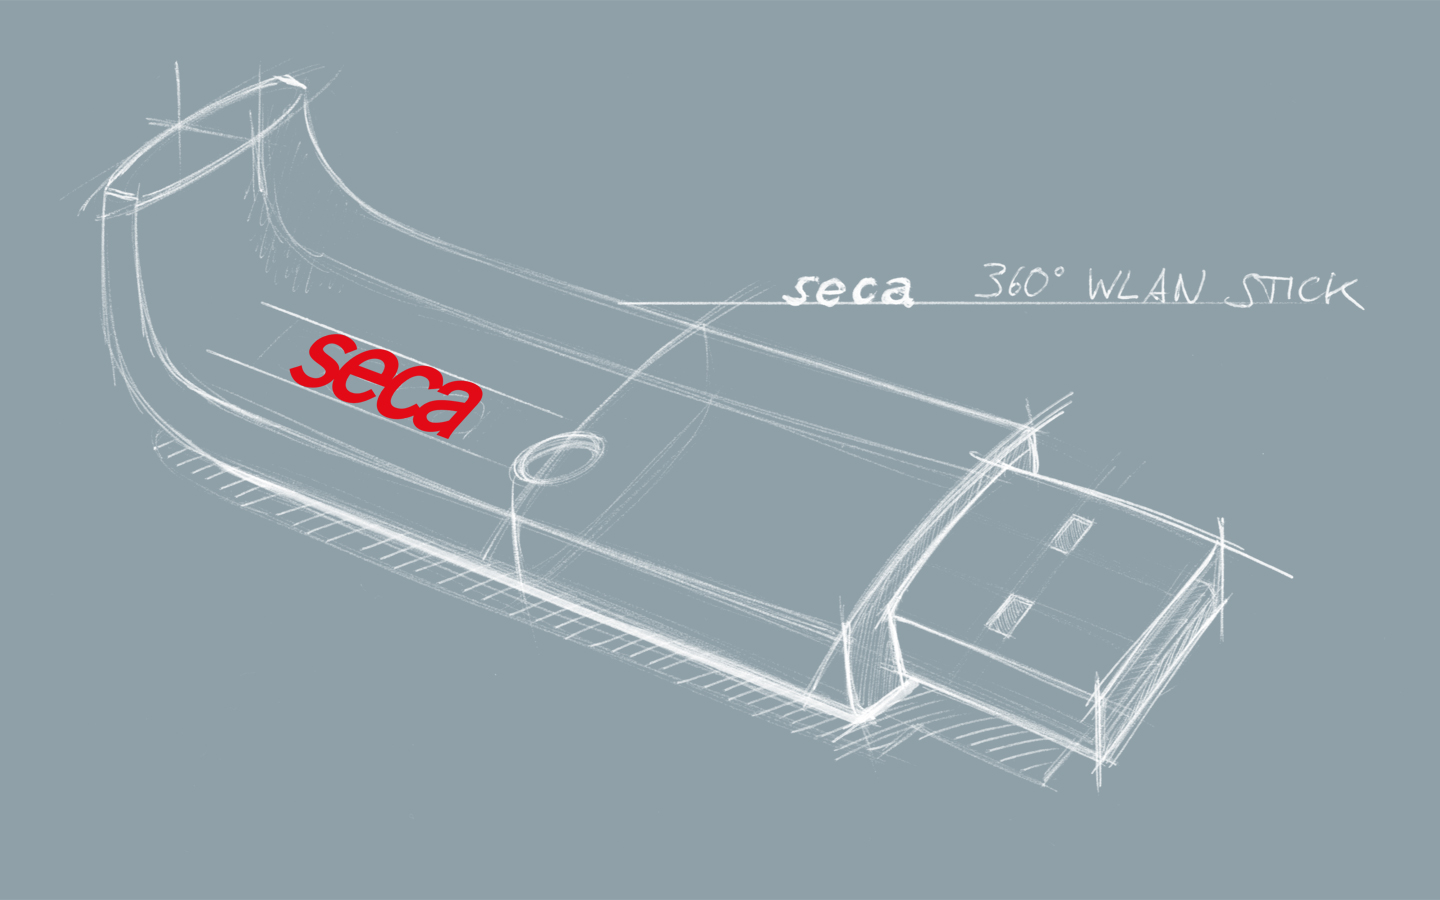 Seca 360 System Design werksdesign sketch